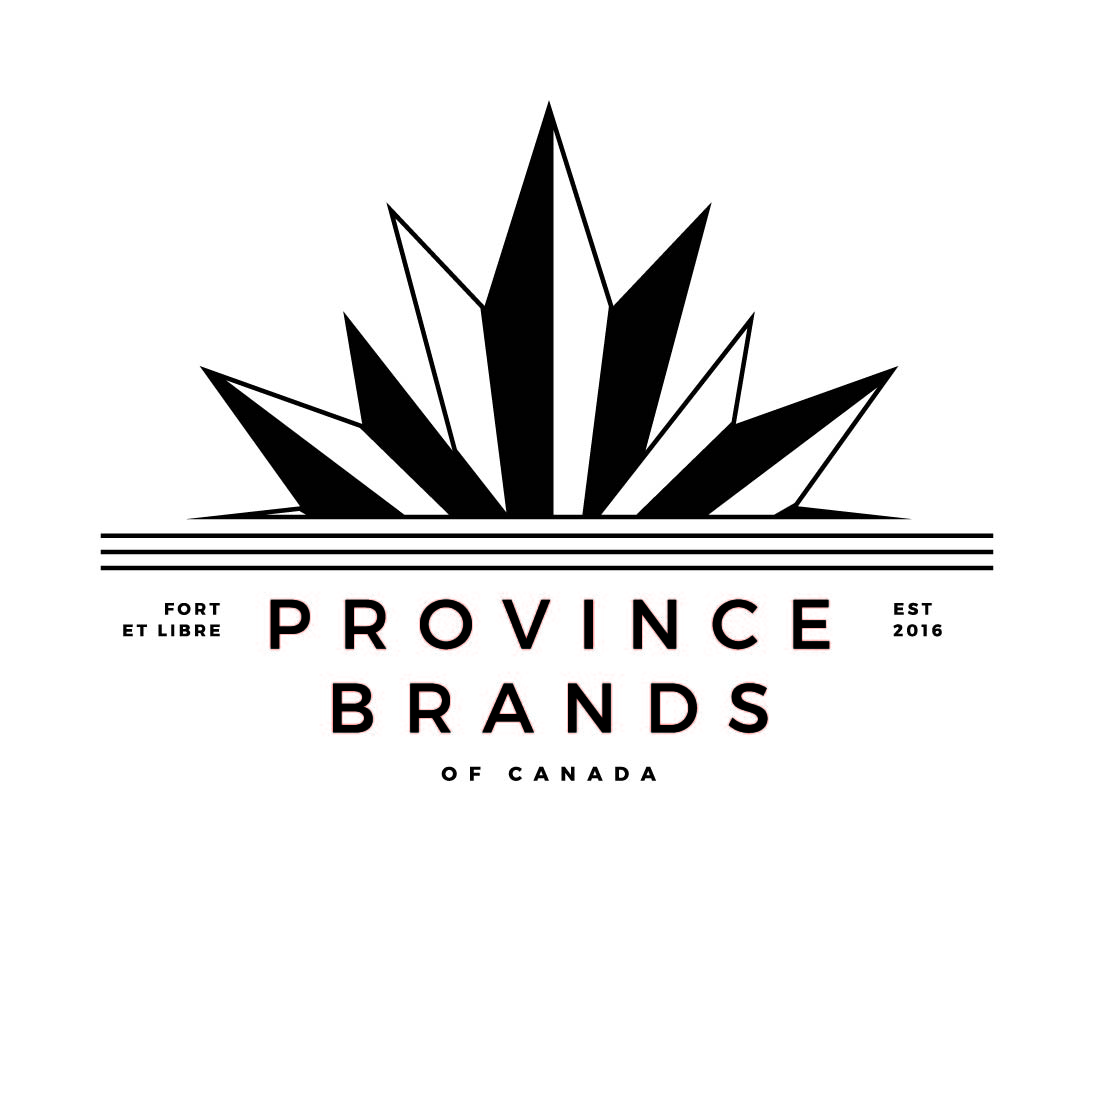 ProvinceBrands_logo_v02 big[94414] (1).jpg